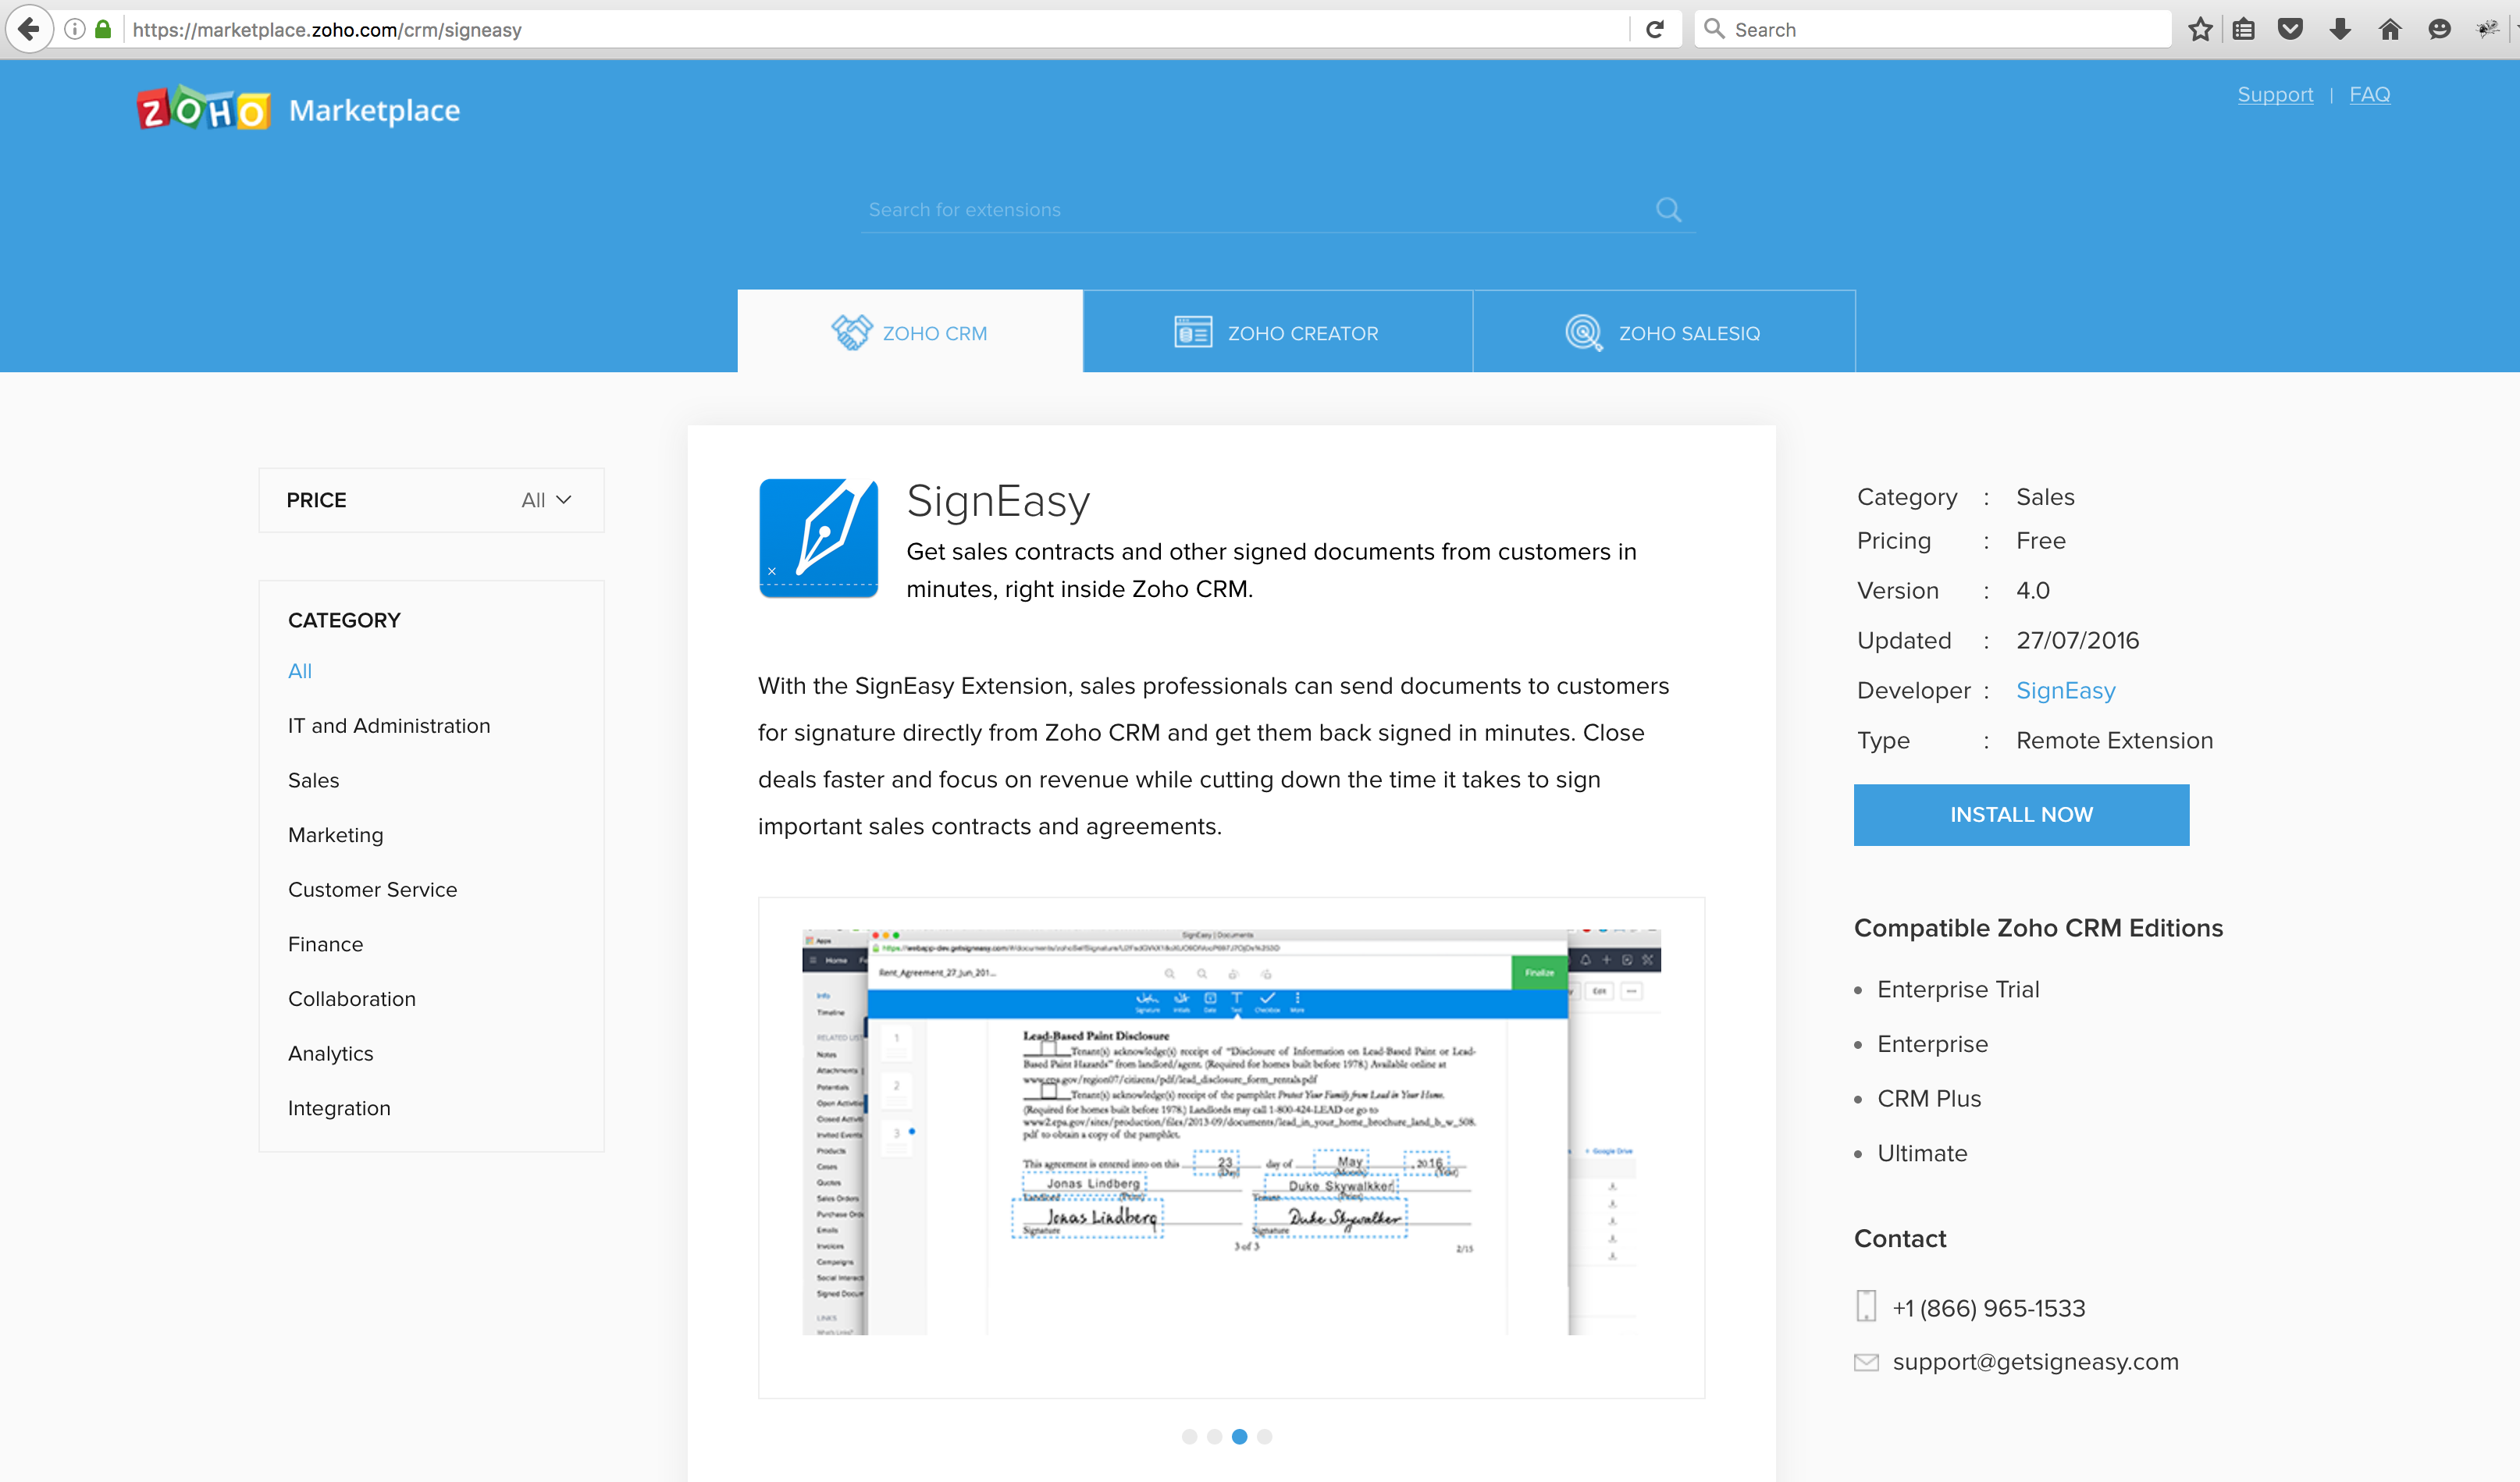 SignEasy on Zoho marketplace